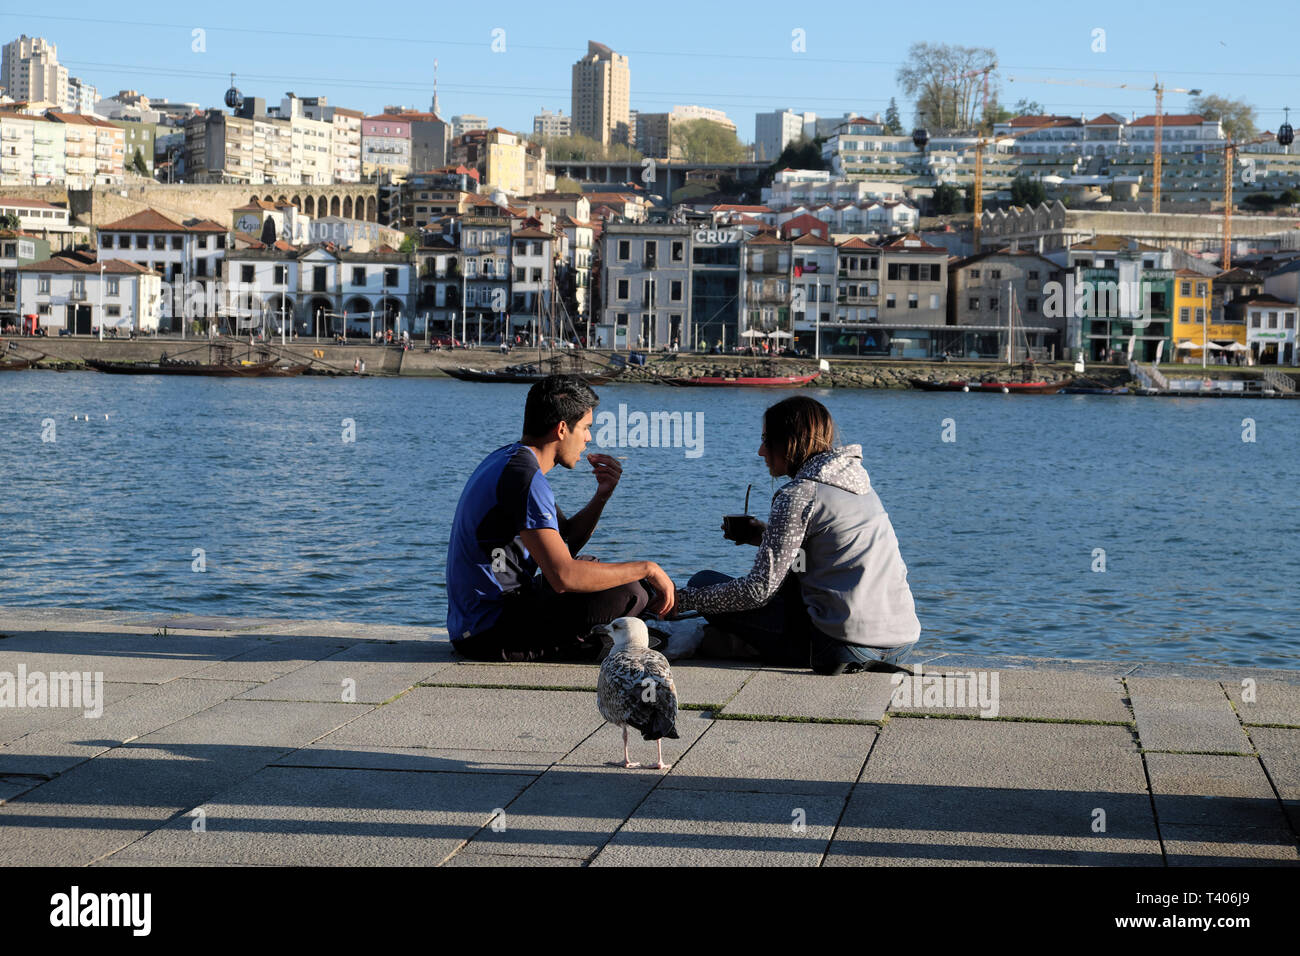 A young couple sitting together eating on the quay by the Douro River on a spring afternoon in the city of Porto, Portugal Europe   KATHY DEWITT Stock Photo